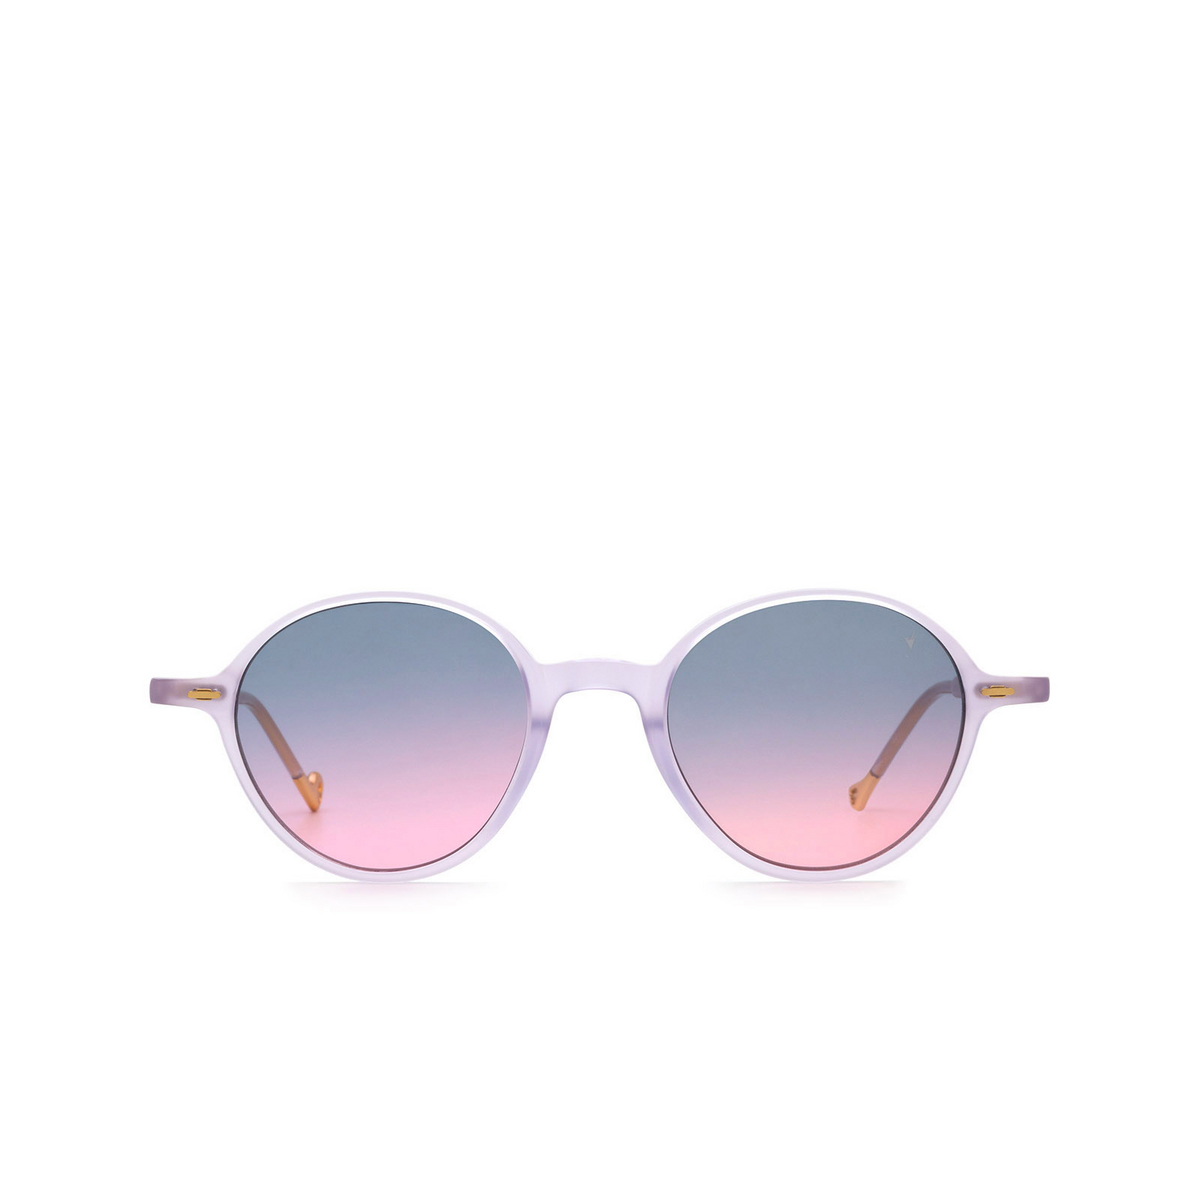 Eyepetizer® Round Sunglasses: Sforza color Lilac C.B/B-20 - front view.